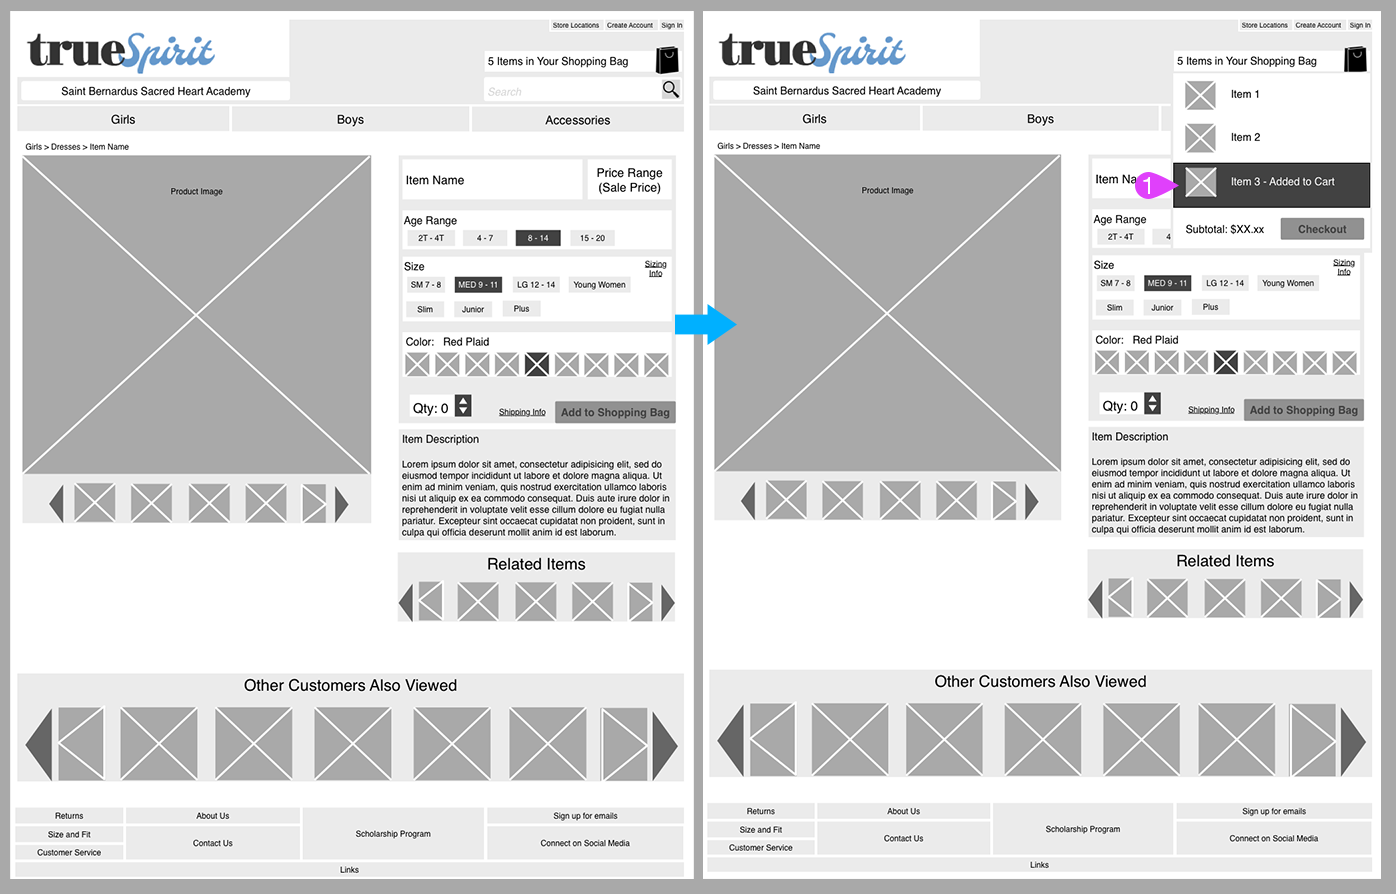 Product Info Page to Shopping Bag. 1) When an item is added to the shopping bag, a modal will slide down from the icon with the latest added item as confirmation. A maximum of five most recent items will be displayed. Clicking inside the modal takes the user to the full shopping bag view, or they have the option to go straight to checkout from here.